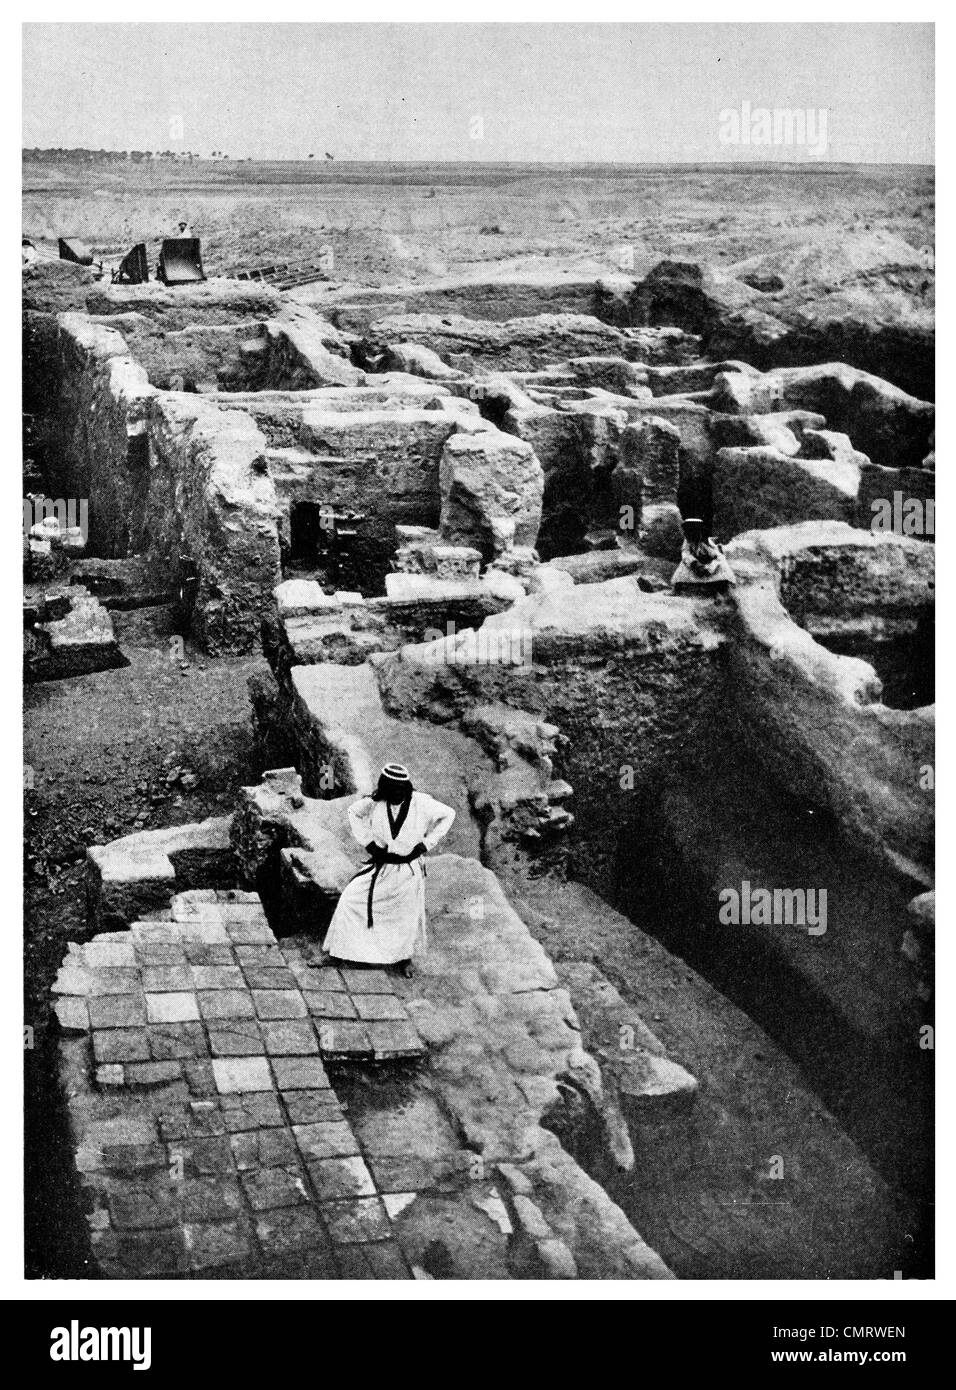 1919 Babylon excavation Iraq - Stock Image